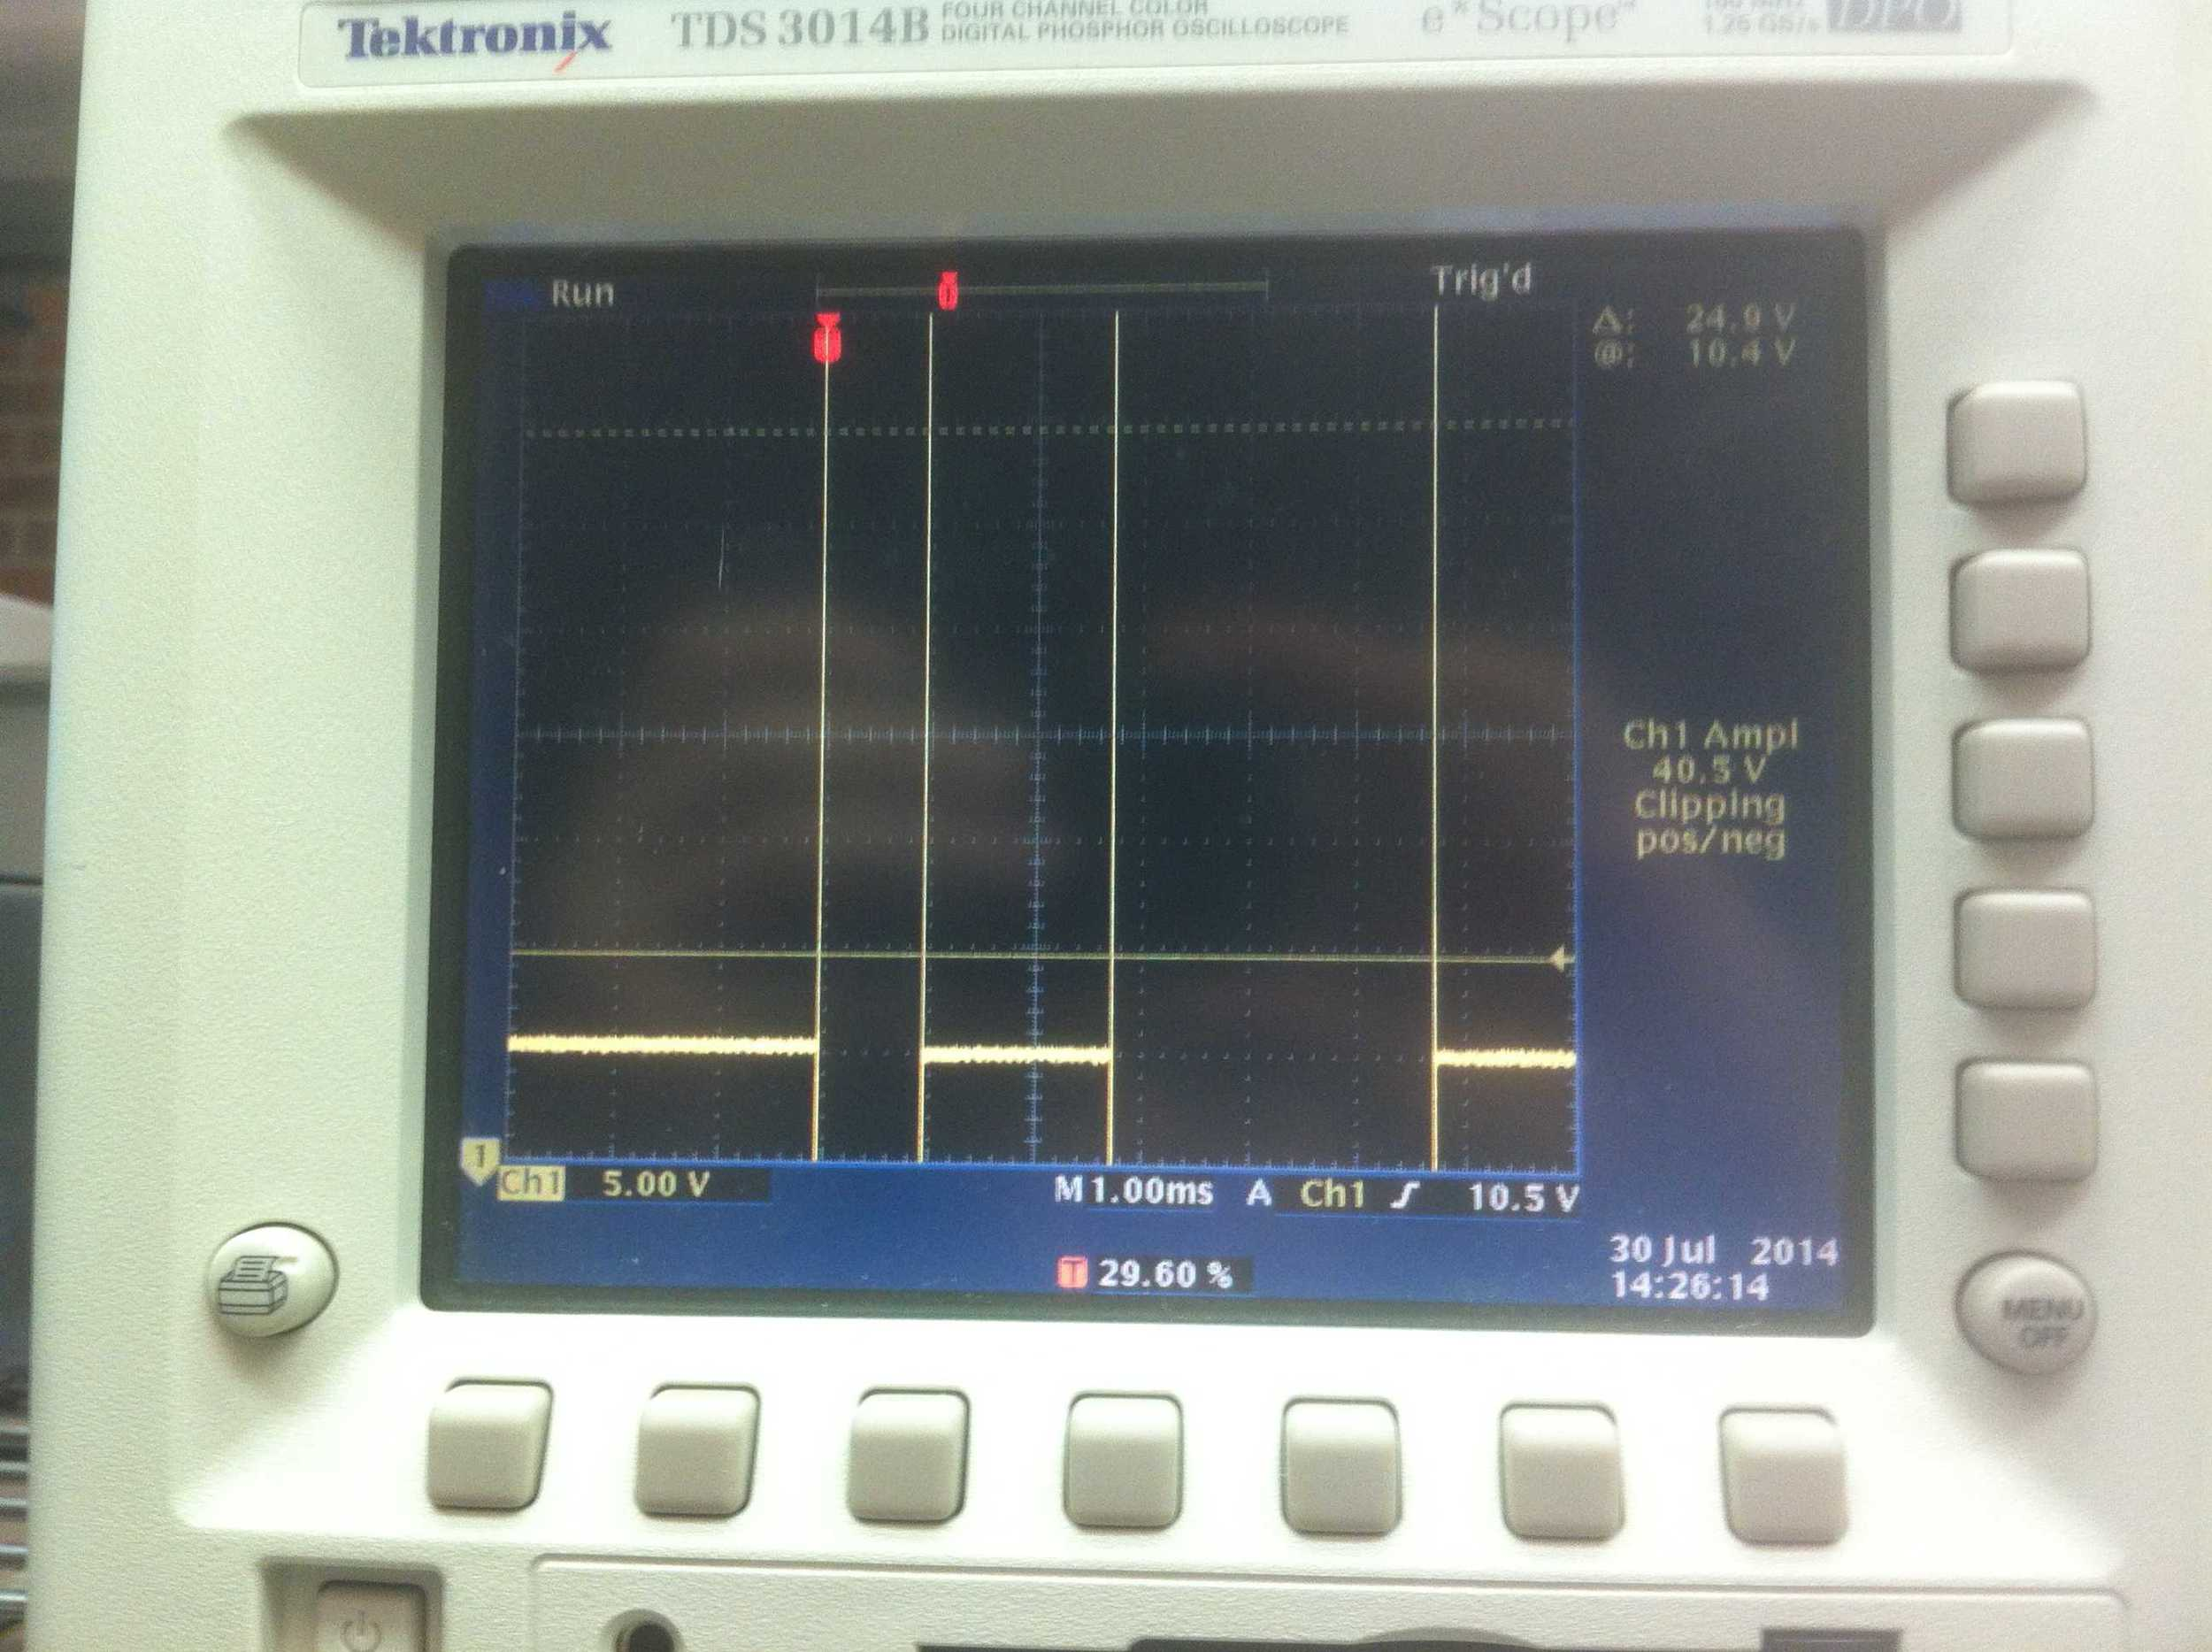 Injection signal from RP showing two different pulses.